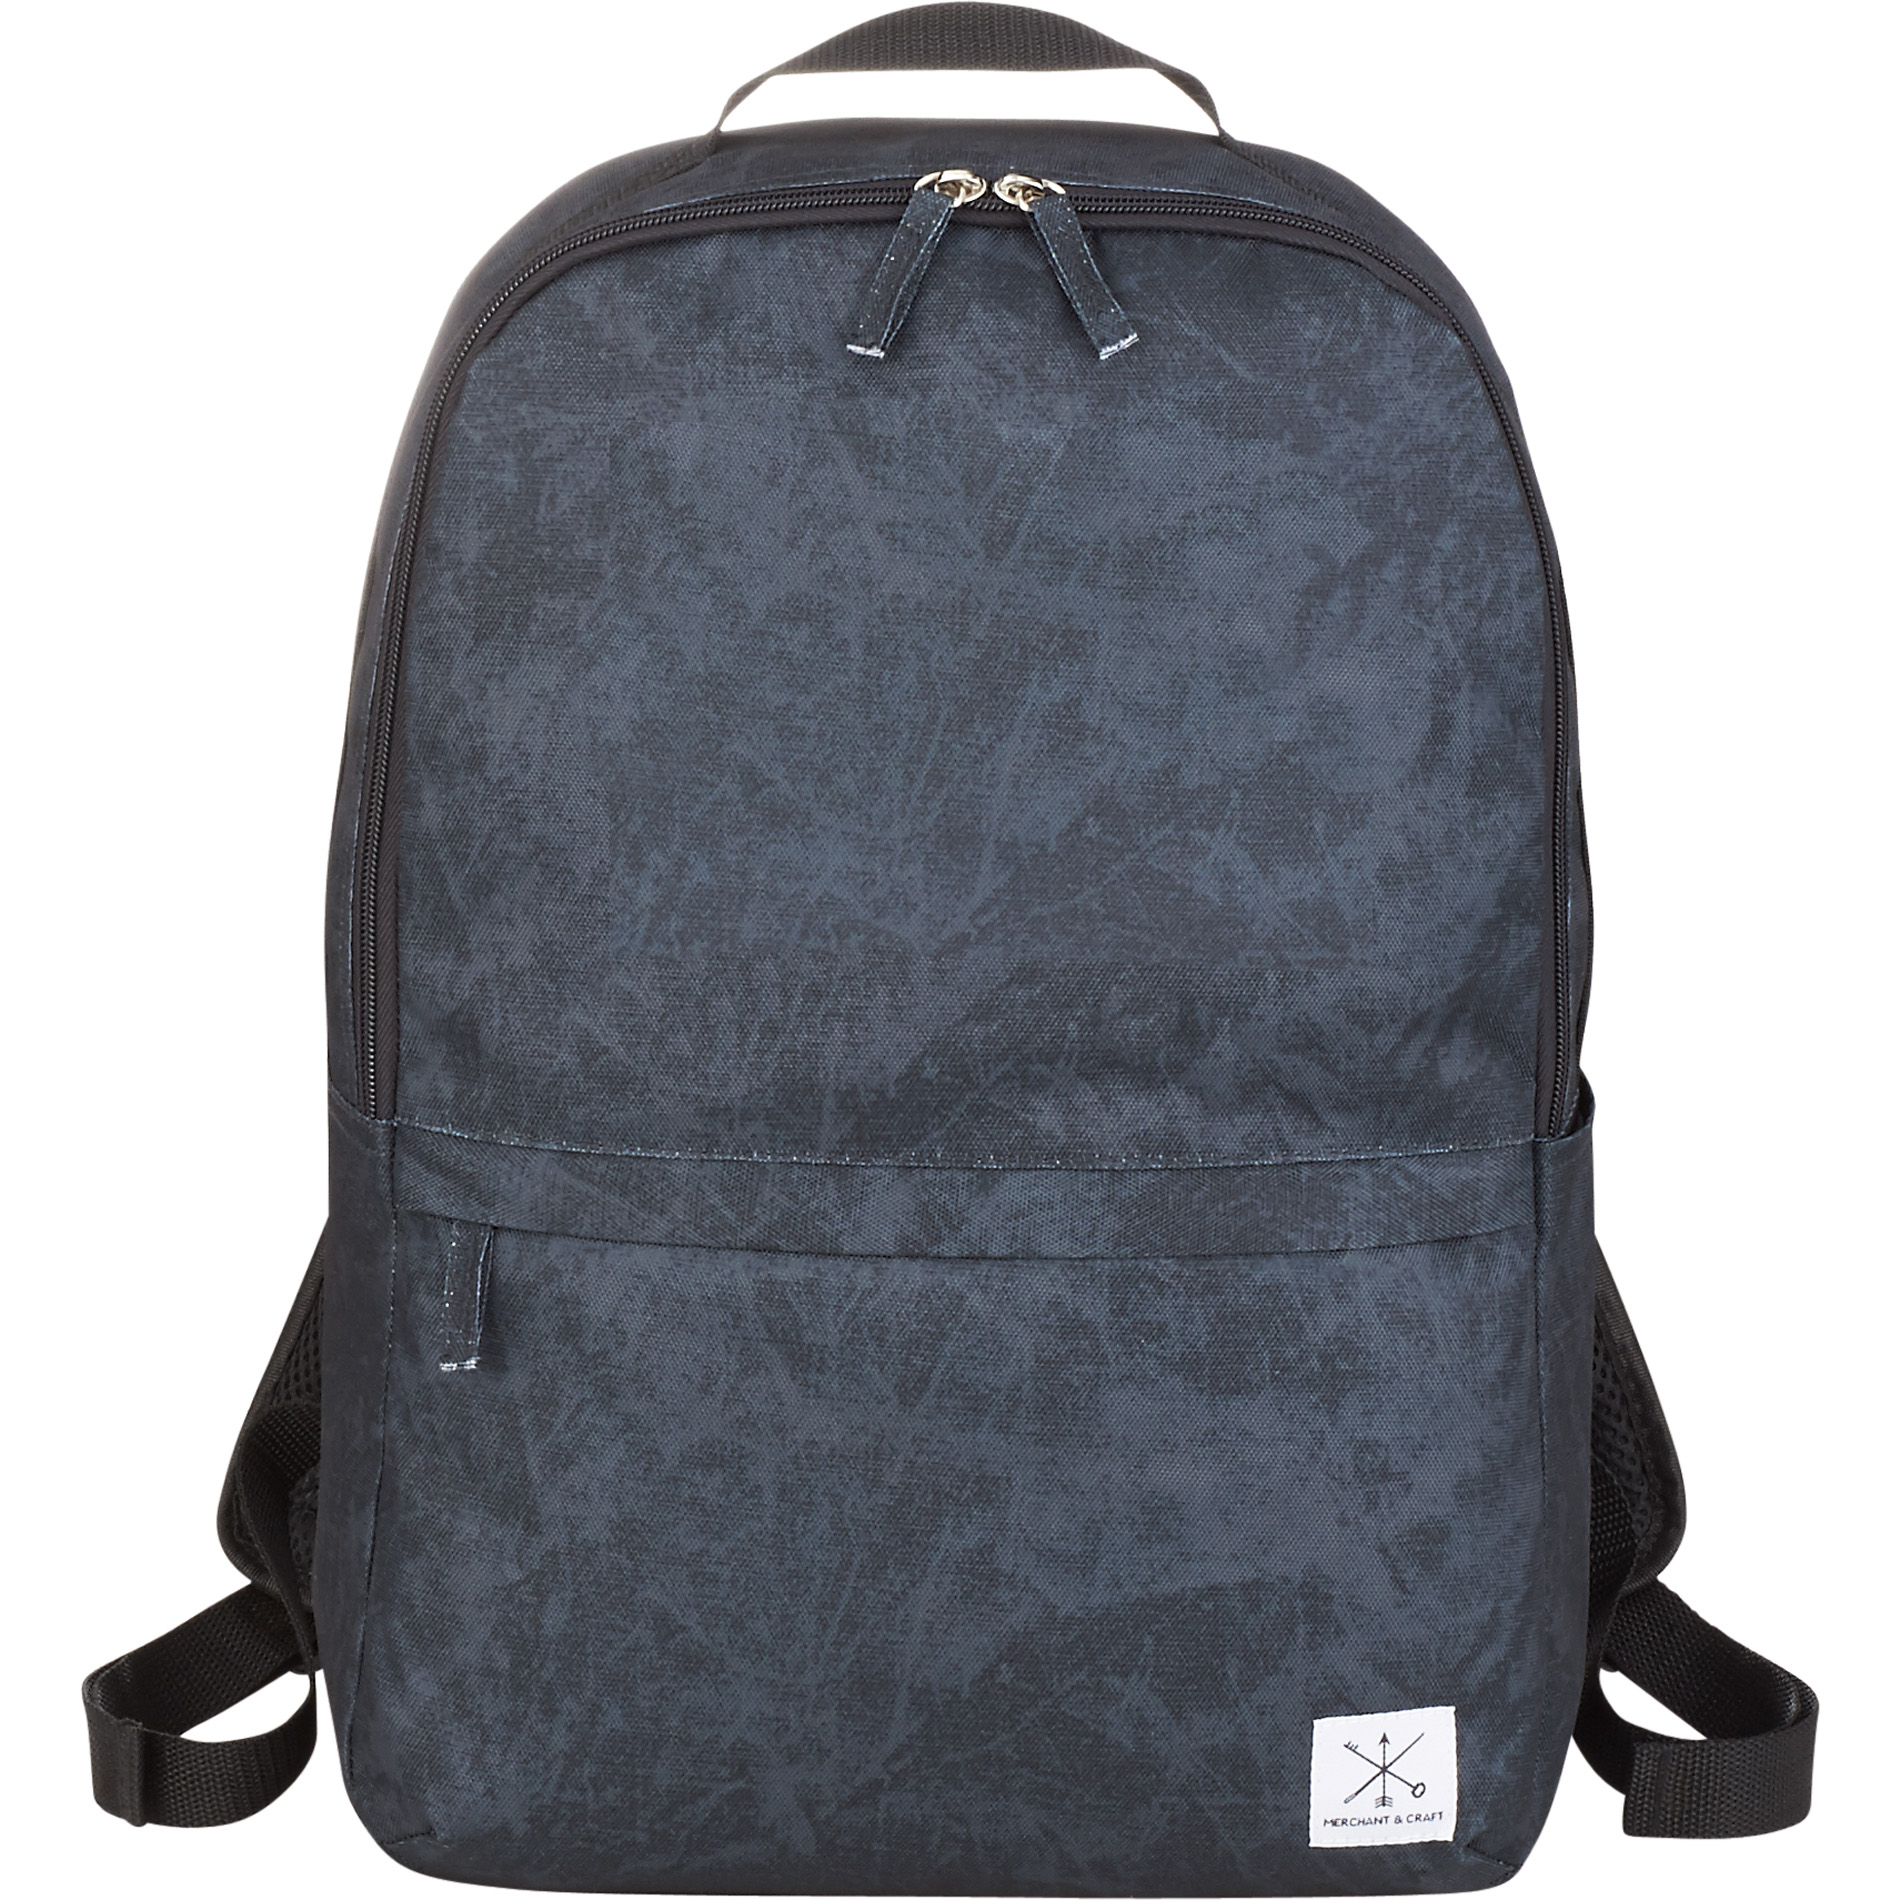 "Merchant & Craft 3750-17 - Adley 15"" Computer Backpack"